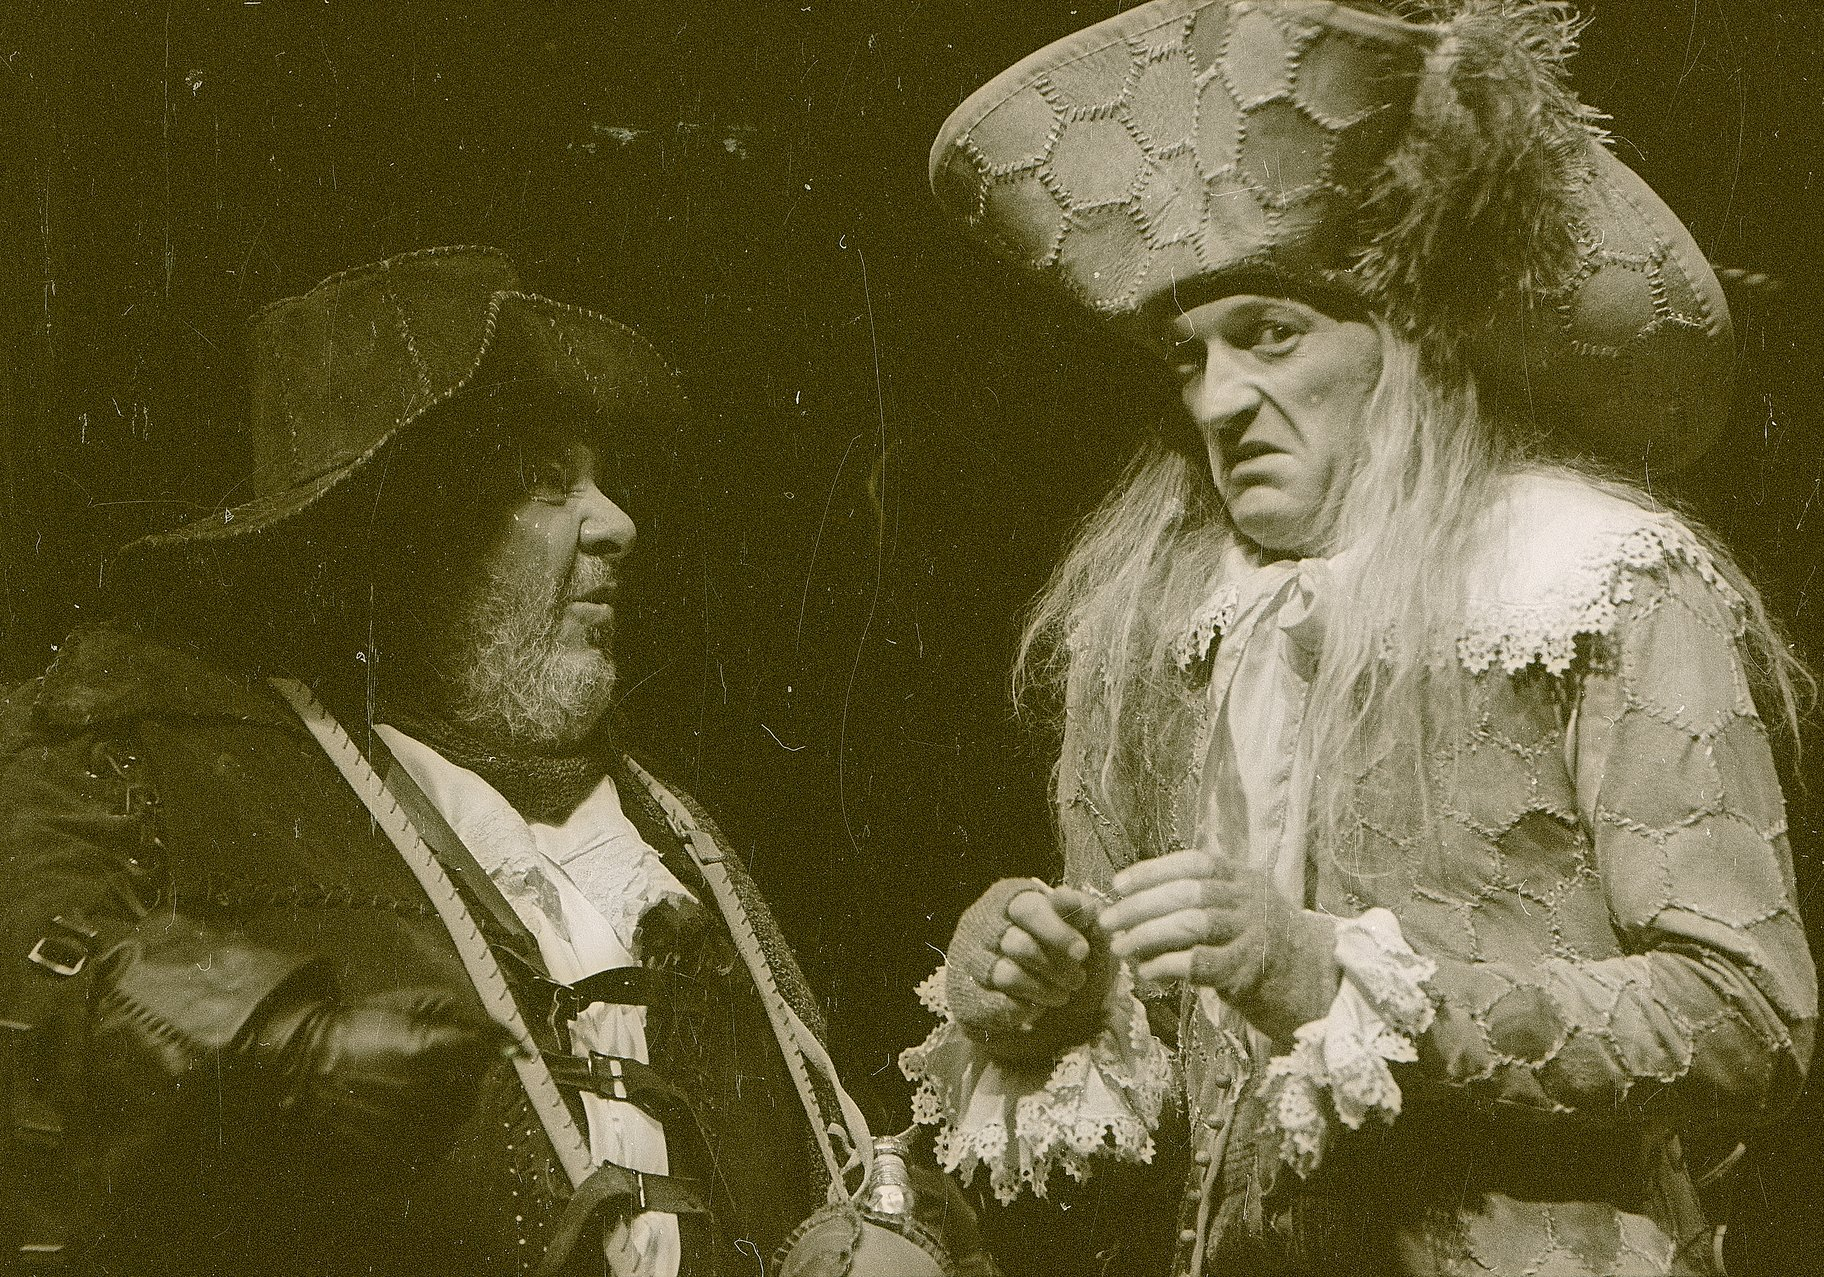 Sir Toby (right) and Sir Andrew (left) in conversation